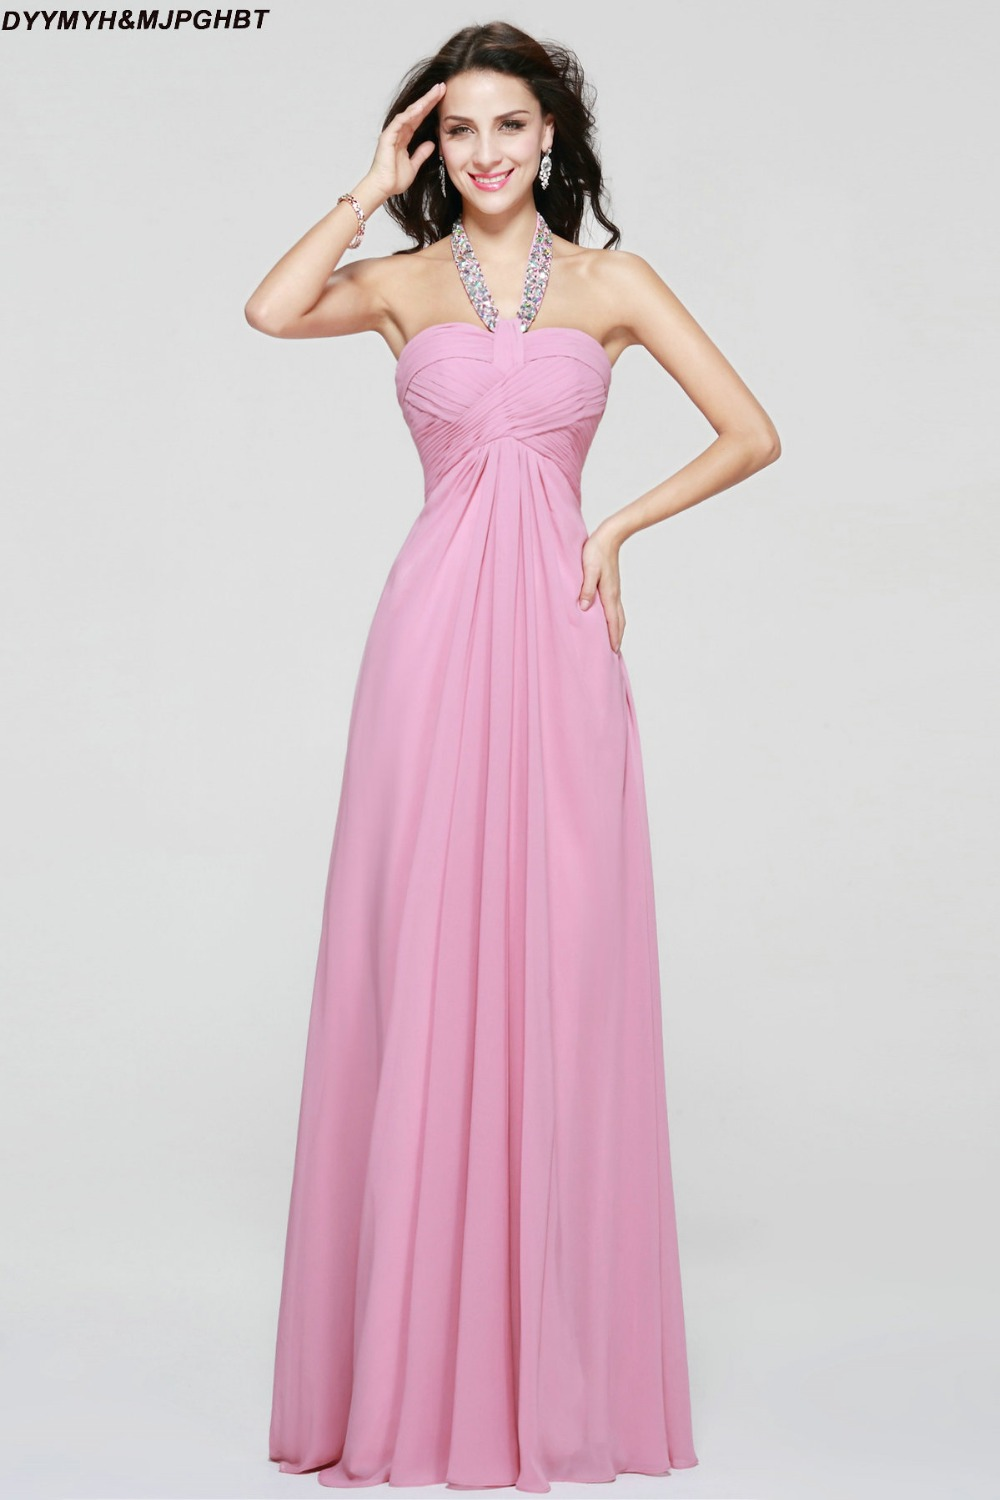 Aliexpress buy crystal halter bridesmaid dresses dusty pink aliexpress buy crystal halter bridesmaid dresses dusty pink open back with bow long baby pink maid of honor dresses from reliable bridesmaid dresses ombrellifo Choice Image